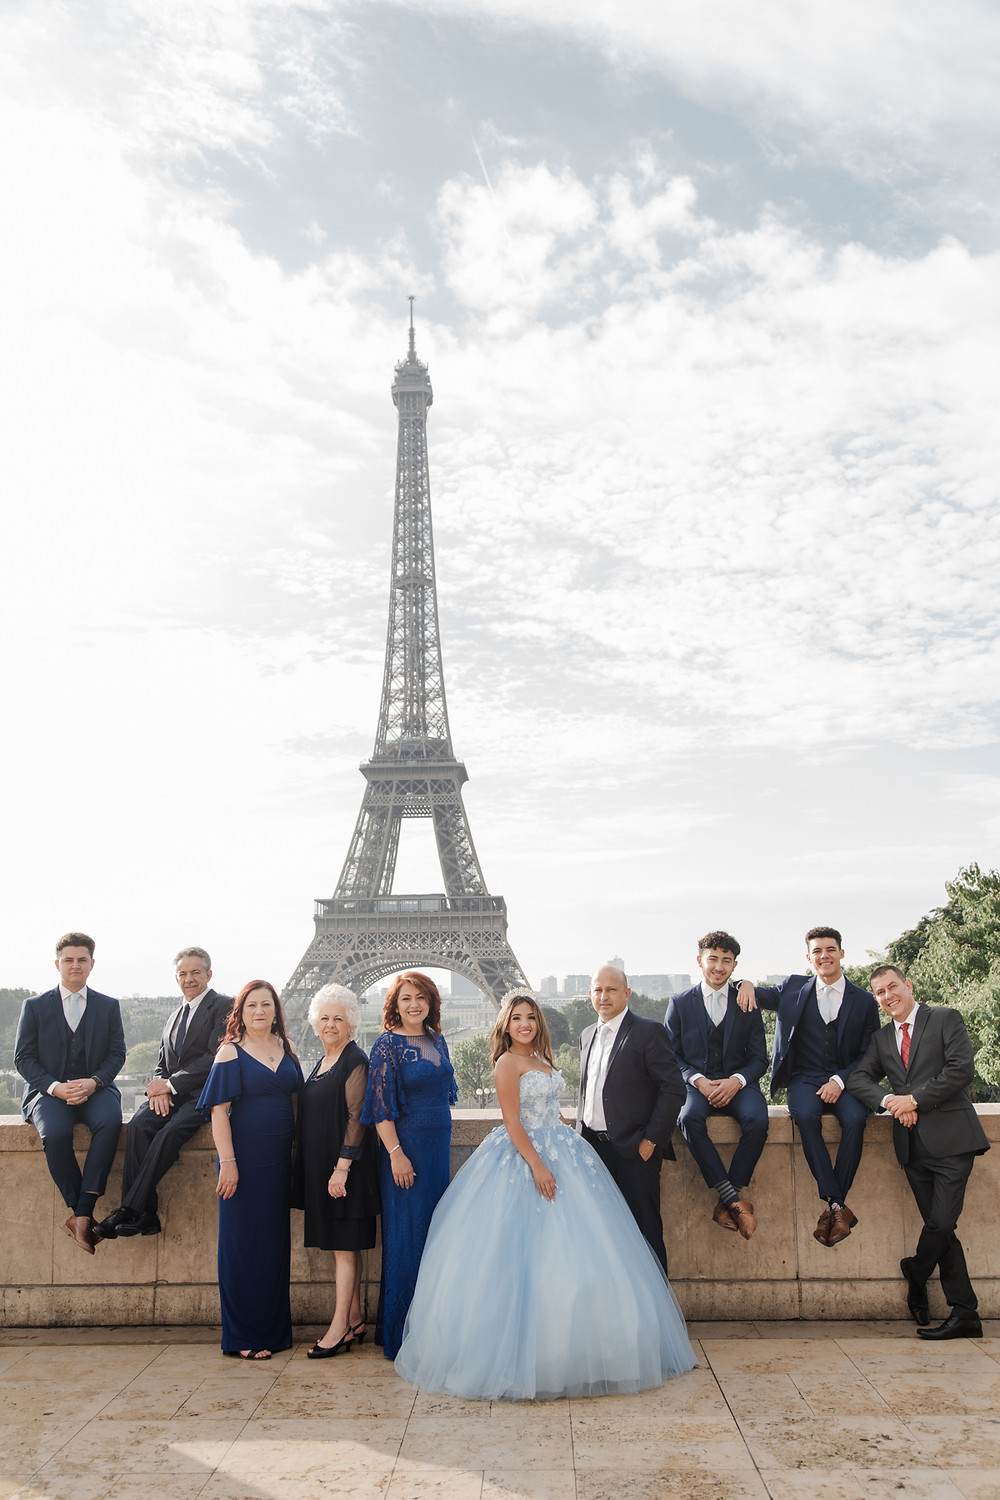 Paris Quinceañera Eiffel Tower with family